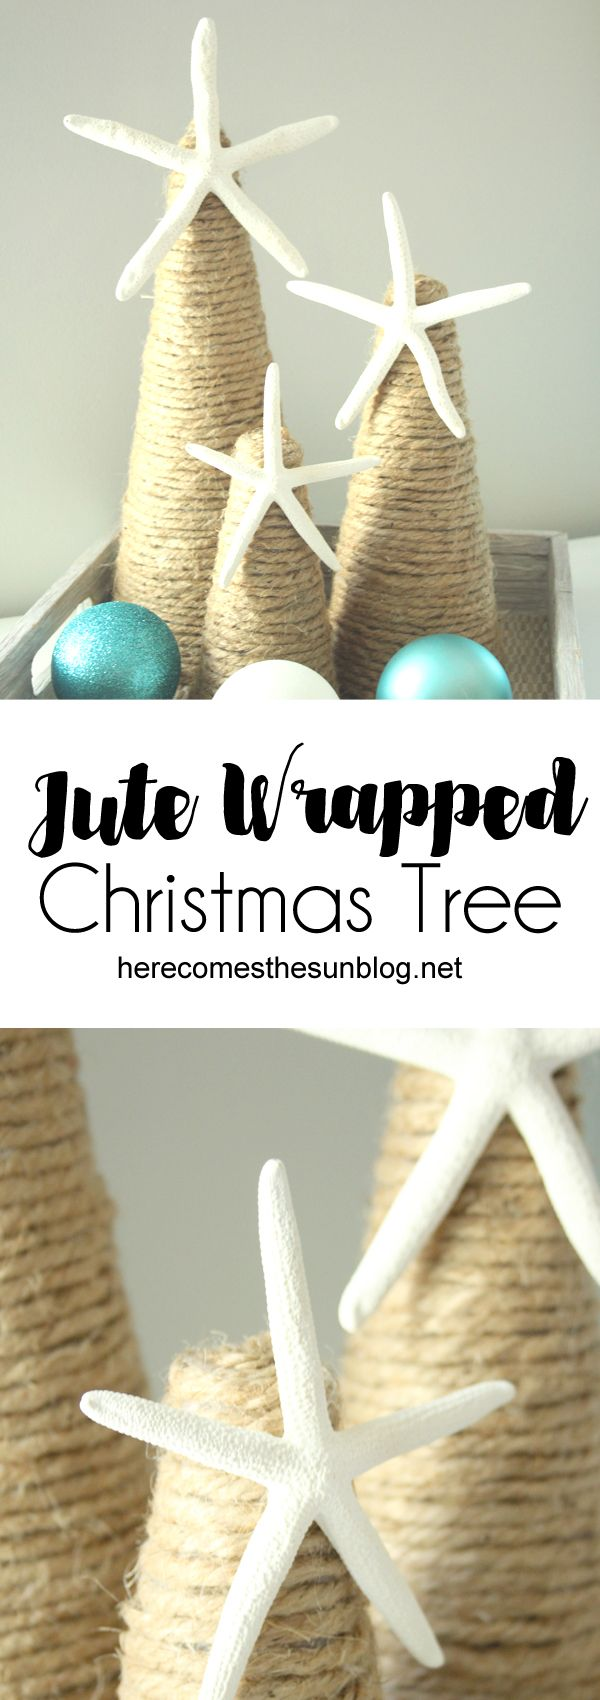 This jute wrapped Christmas tree is the perfect decor for a coastal Christmas.